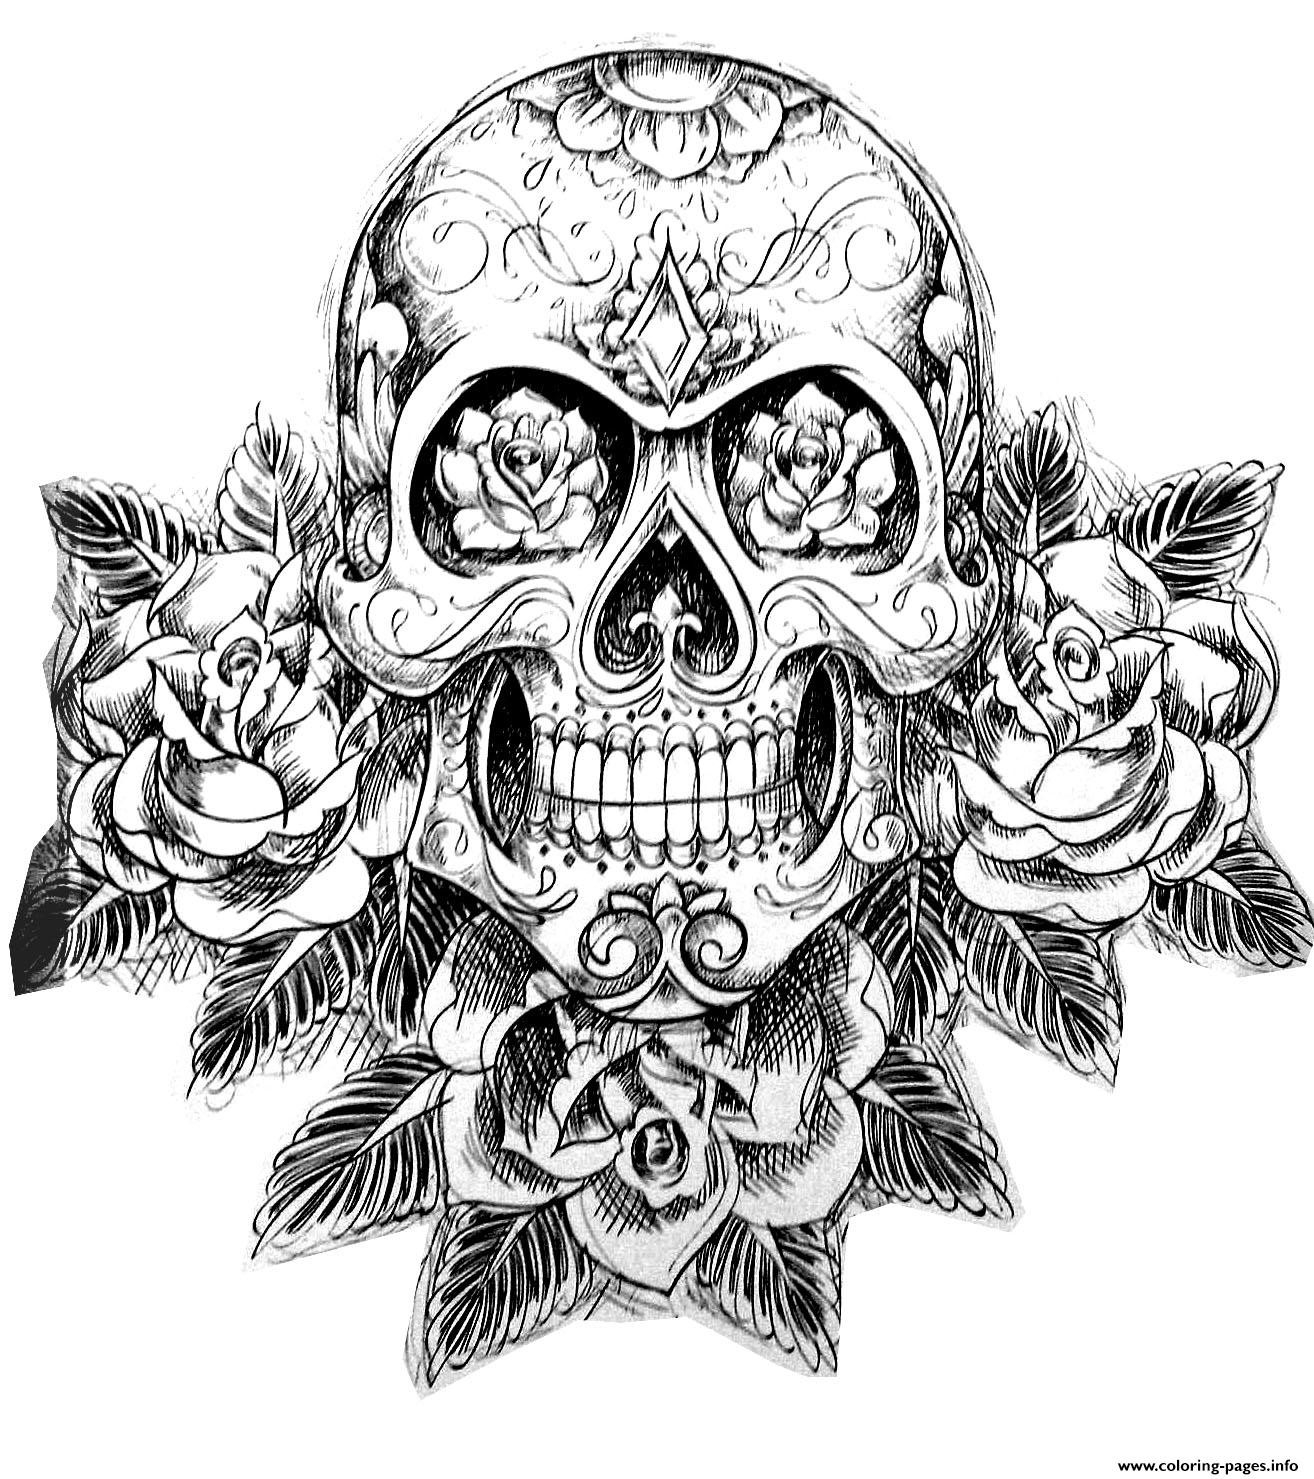 Skull Color Pages Coloring Cute Skull Coloring Pages For Kids With Day Of The Sugar